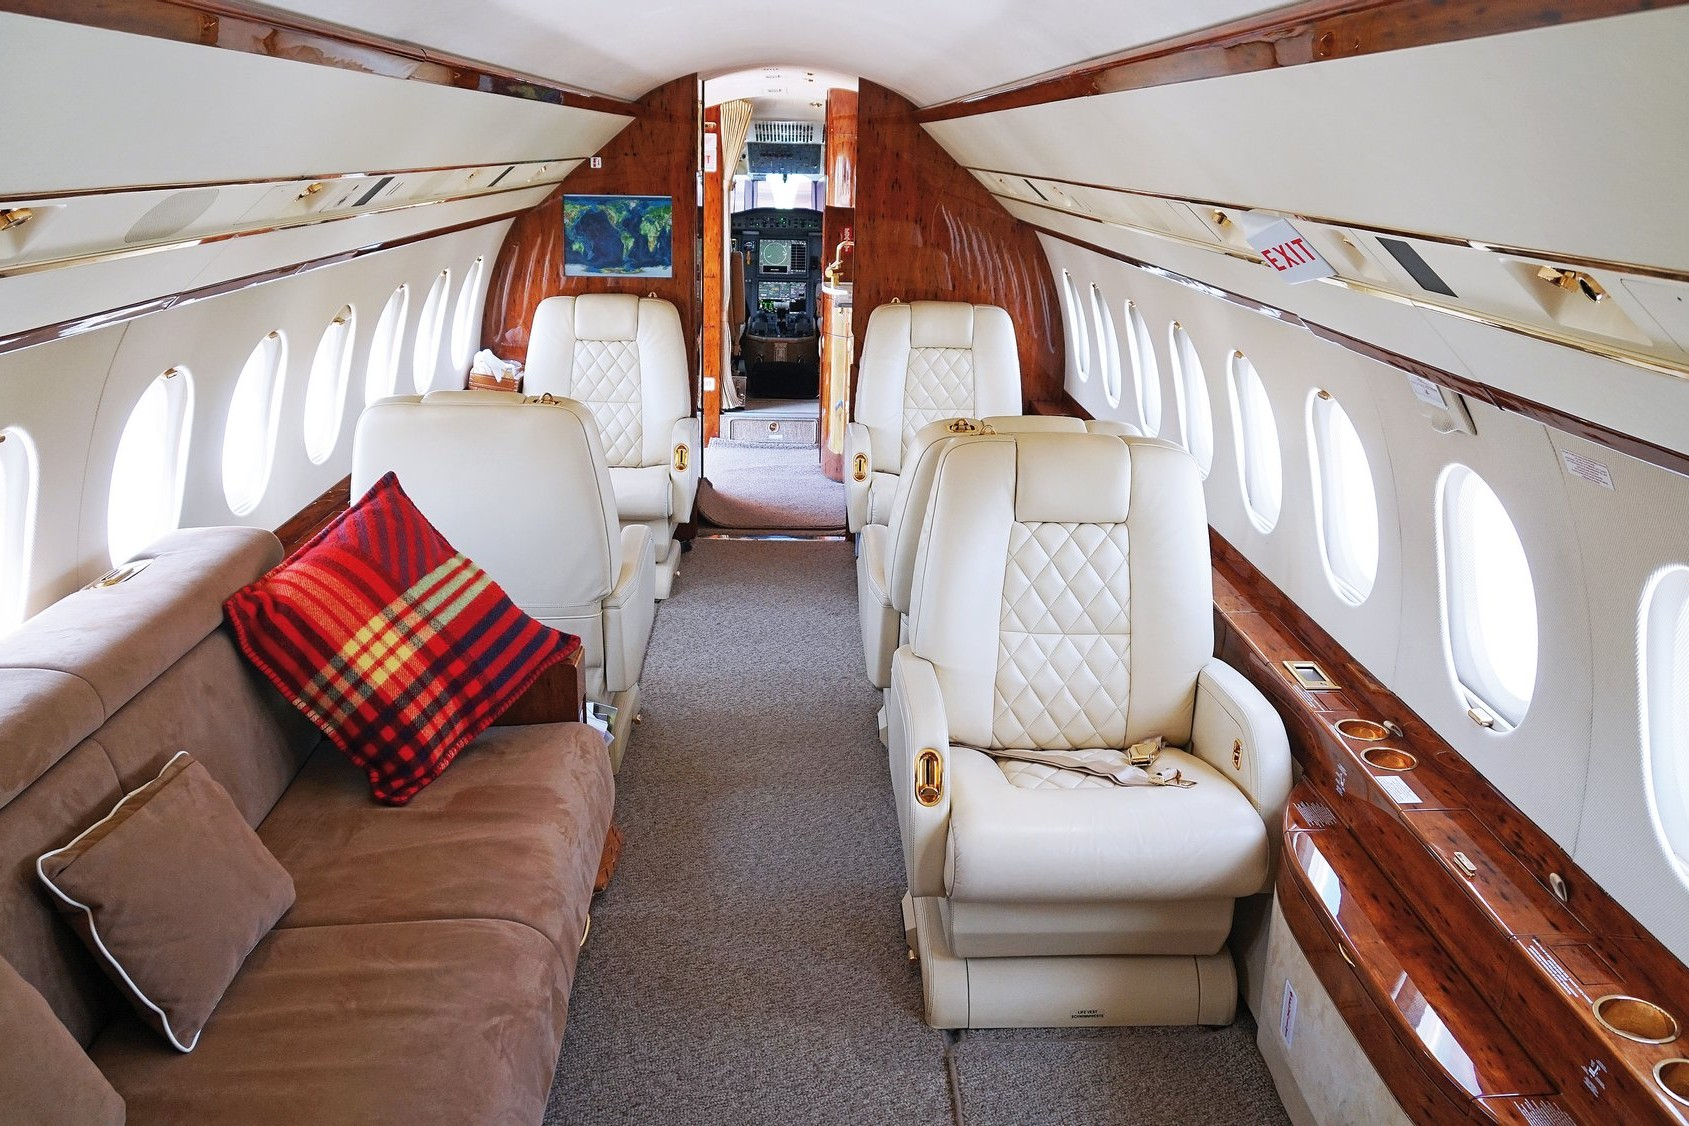 2020 luxury private 737 jet with 2 bedrooms